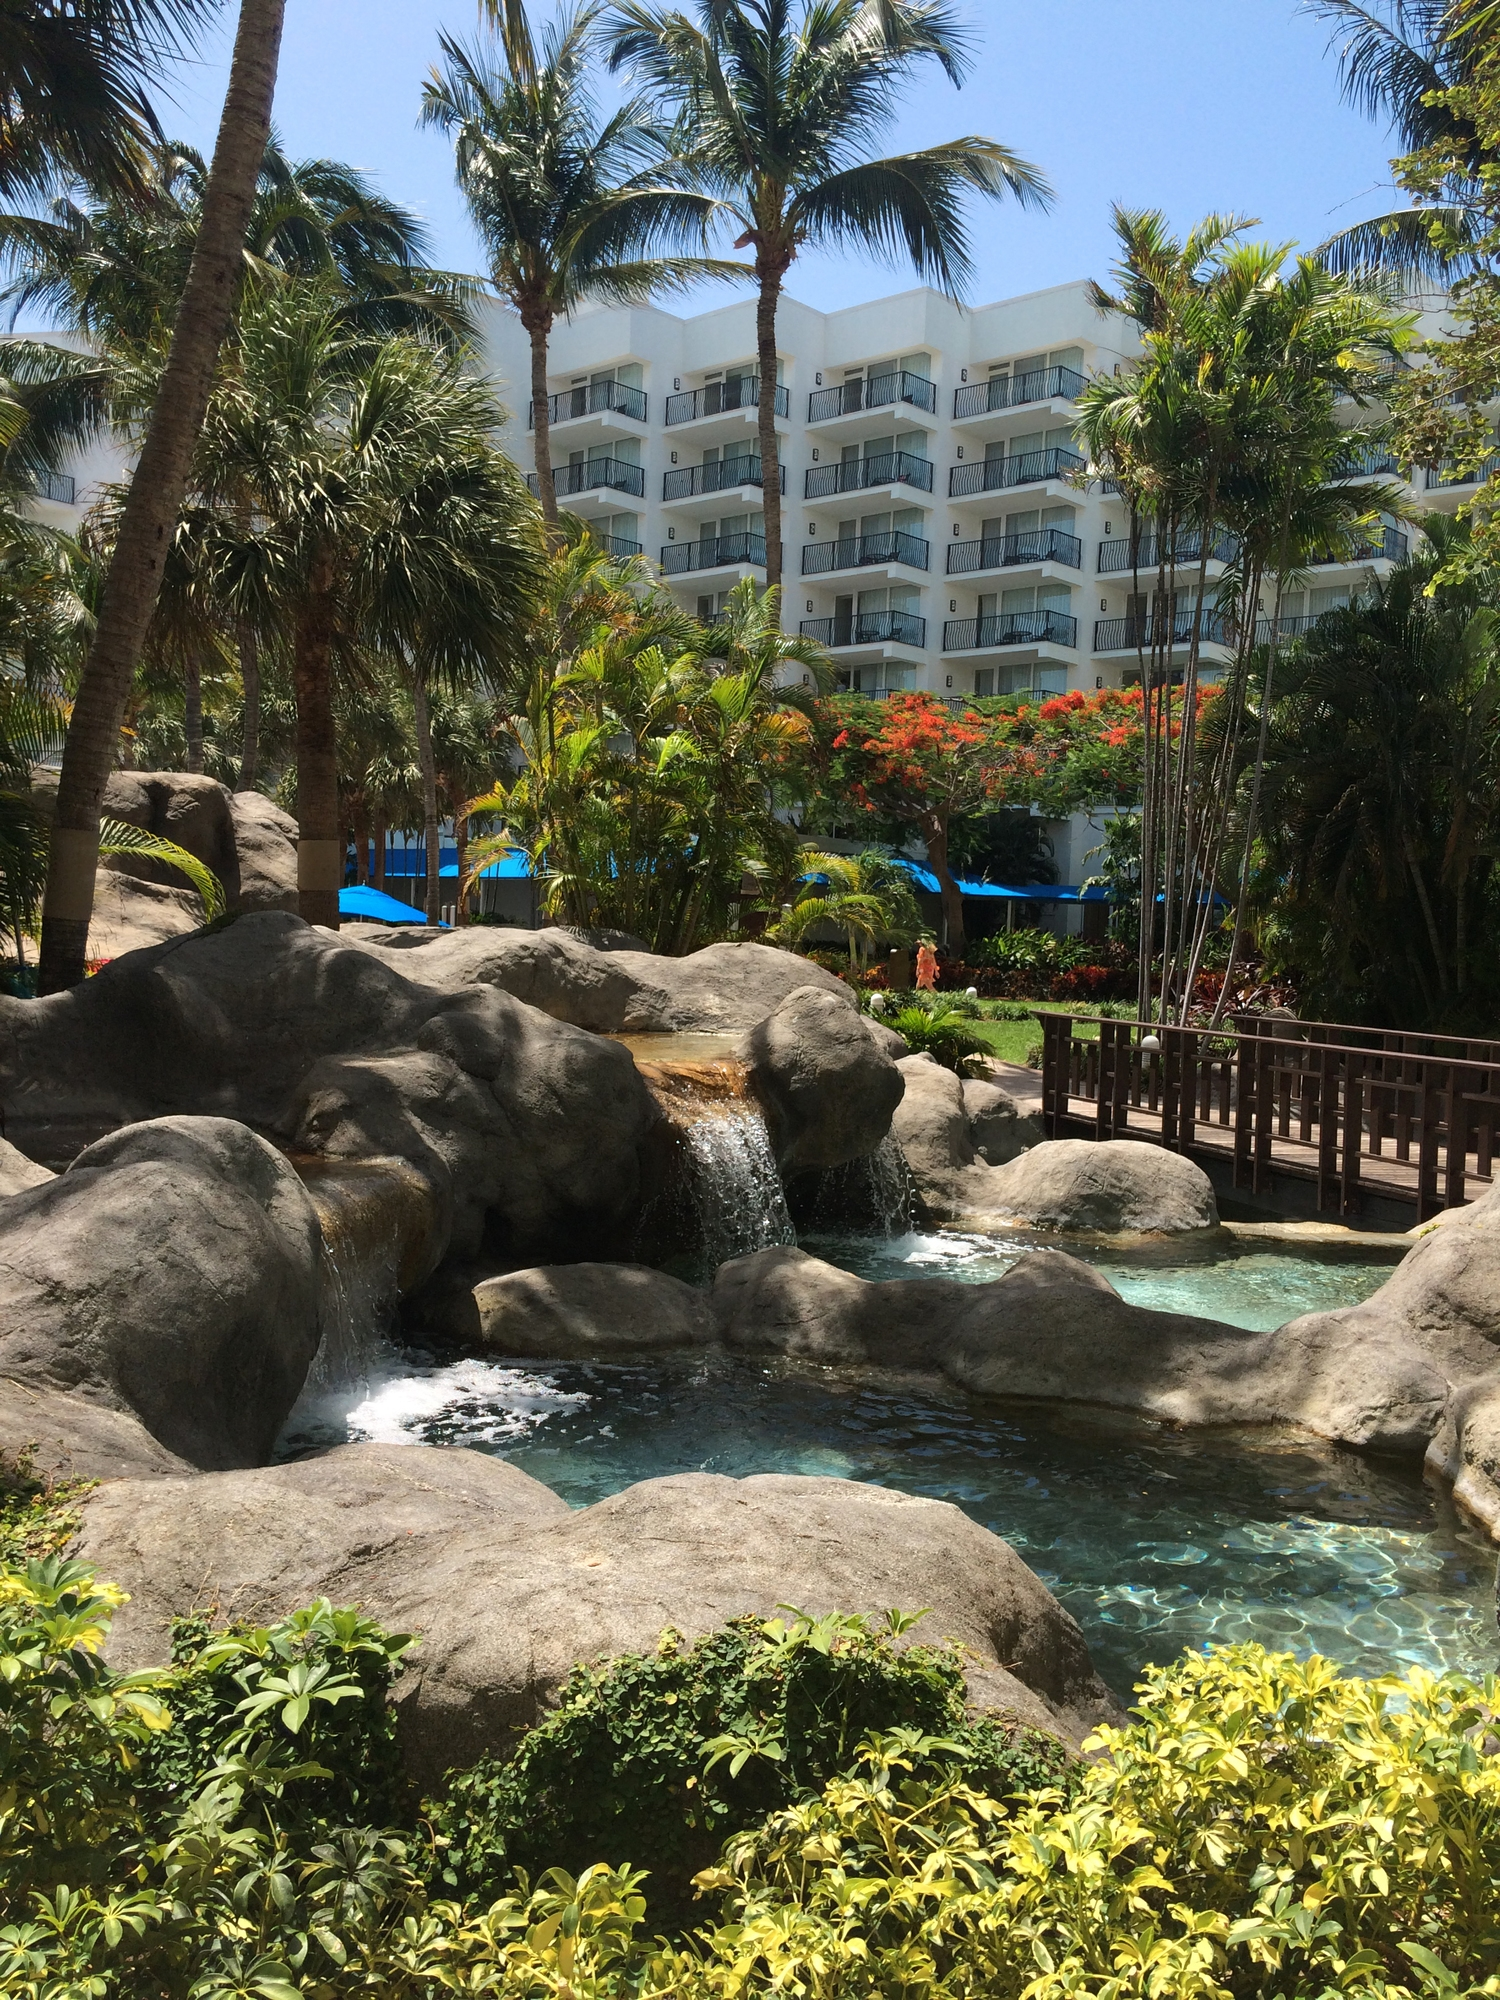 Beautiful view of the pool and waterfall in the Marriott